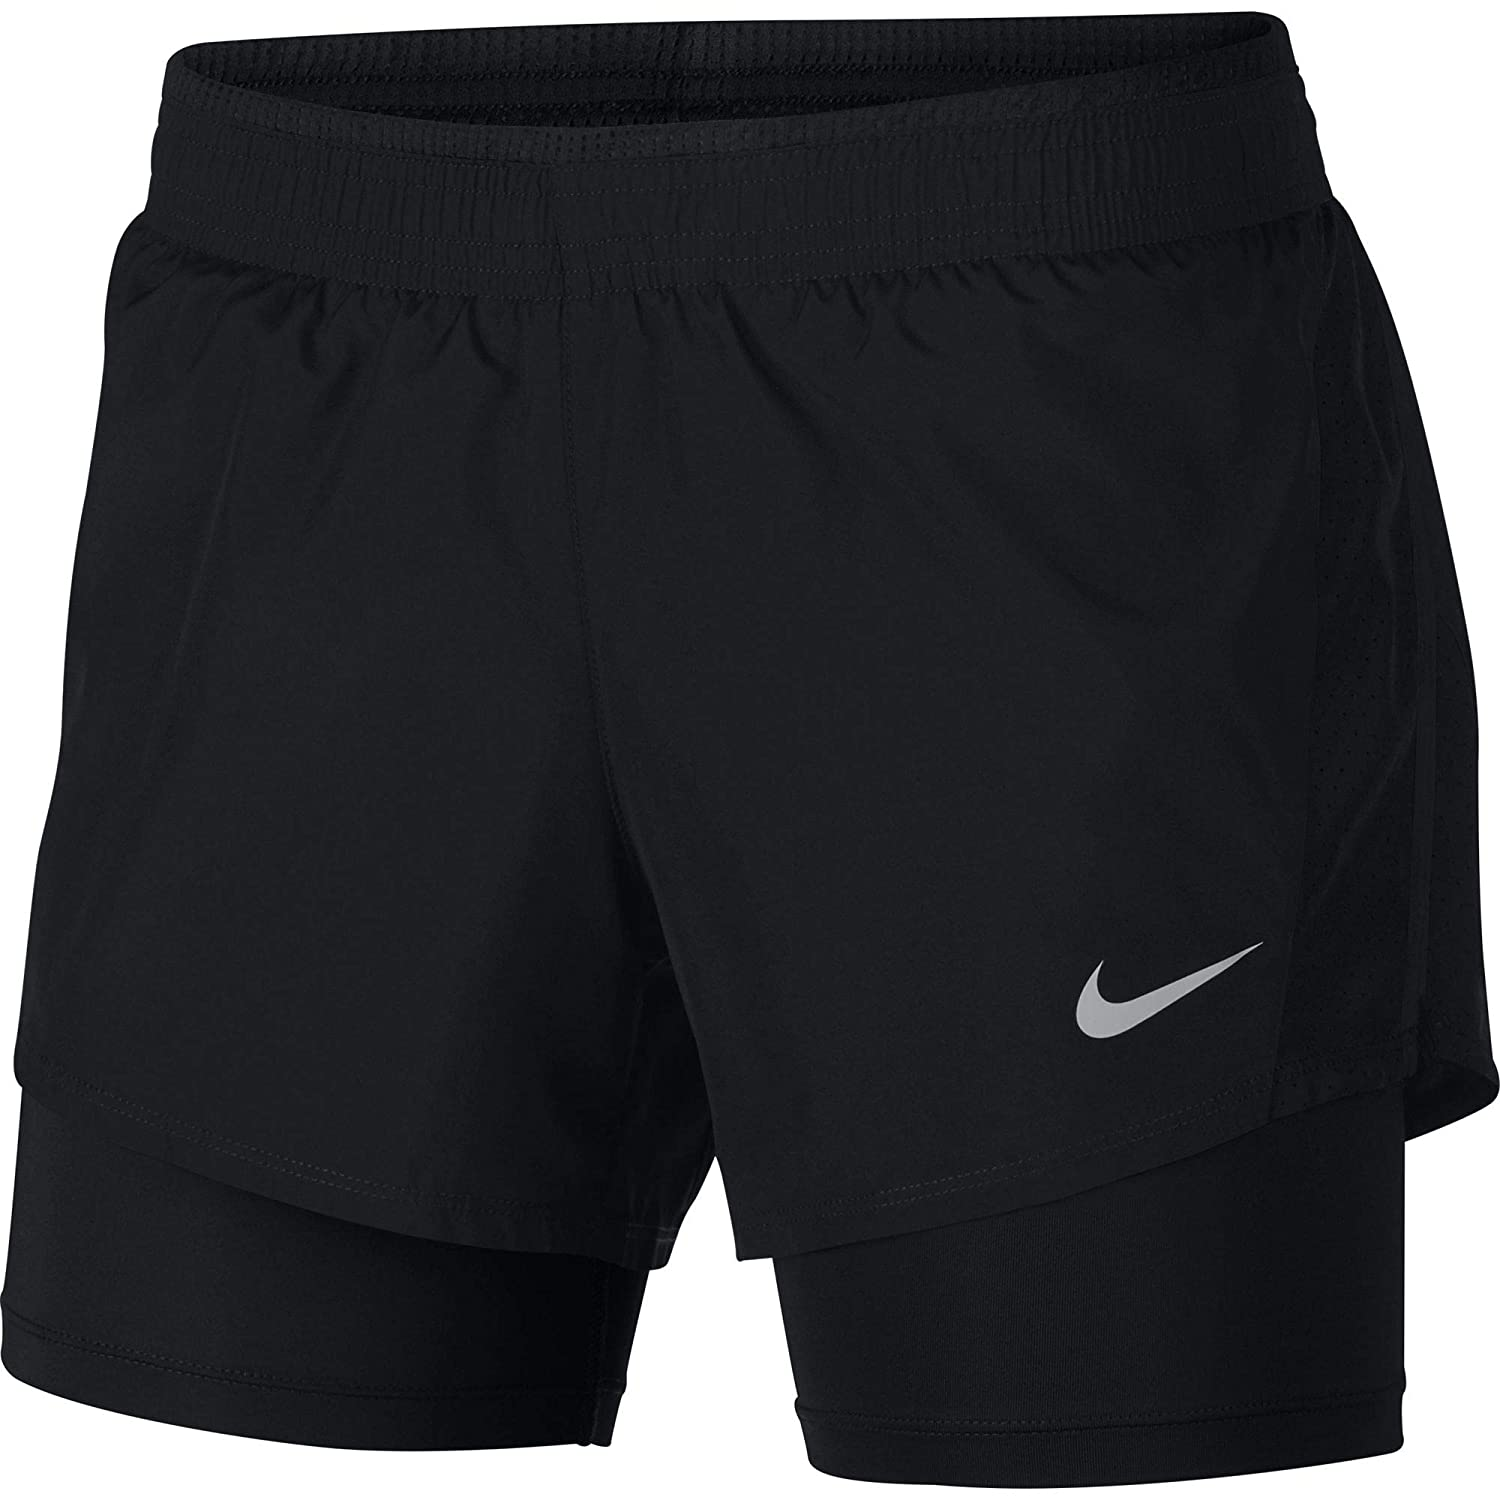 d6d4389ff88d6 Nike Women's Dry 10 K 2 in 1 Shorts, Womens, 902283-010: Amazon.co.uk:  Sports & Outdoors